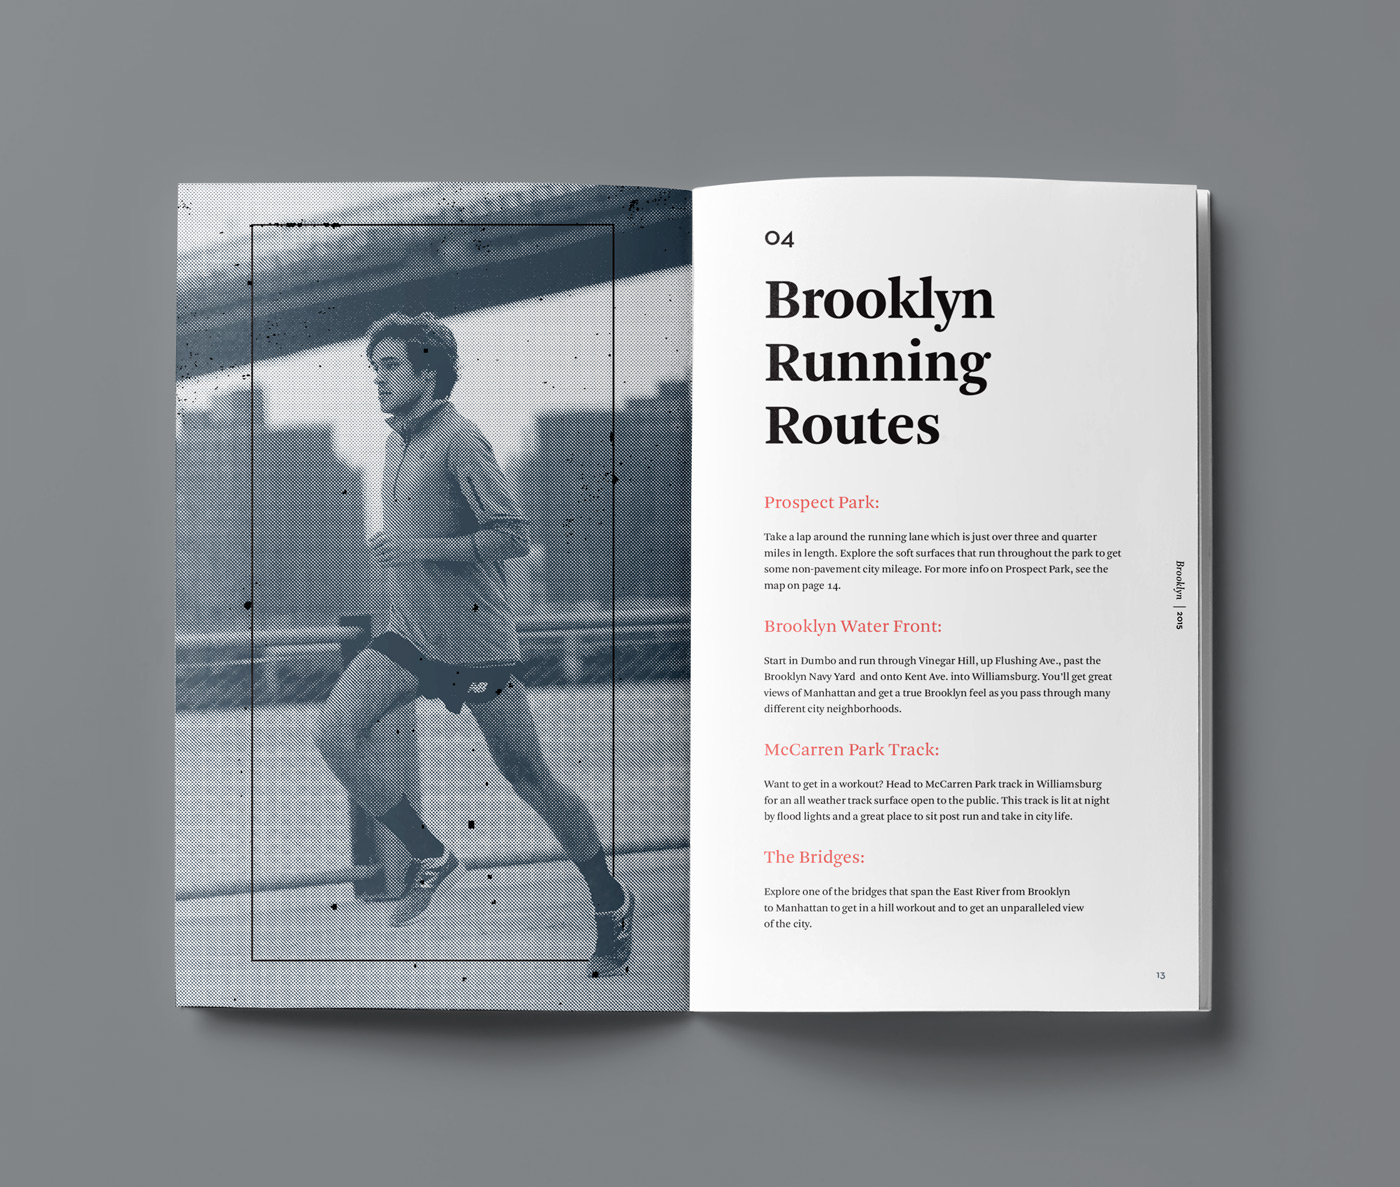 New Balance - Brooklyn Marathon Running Guide - The Heads of State